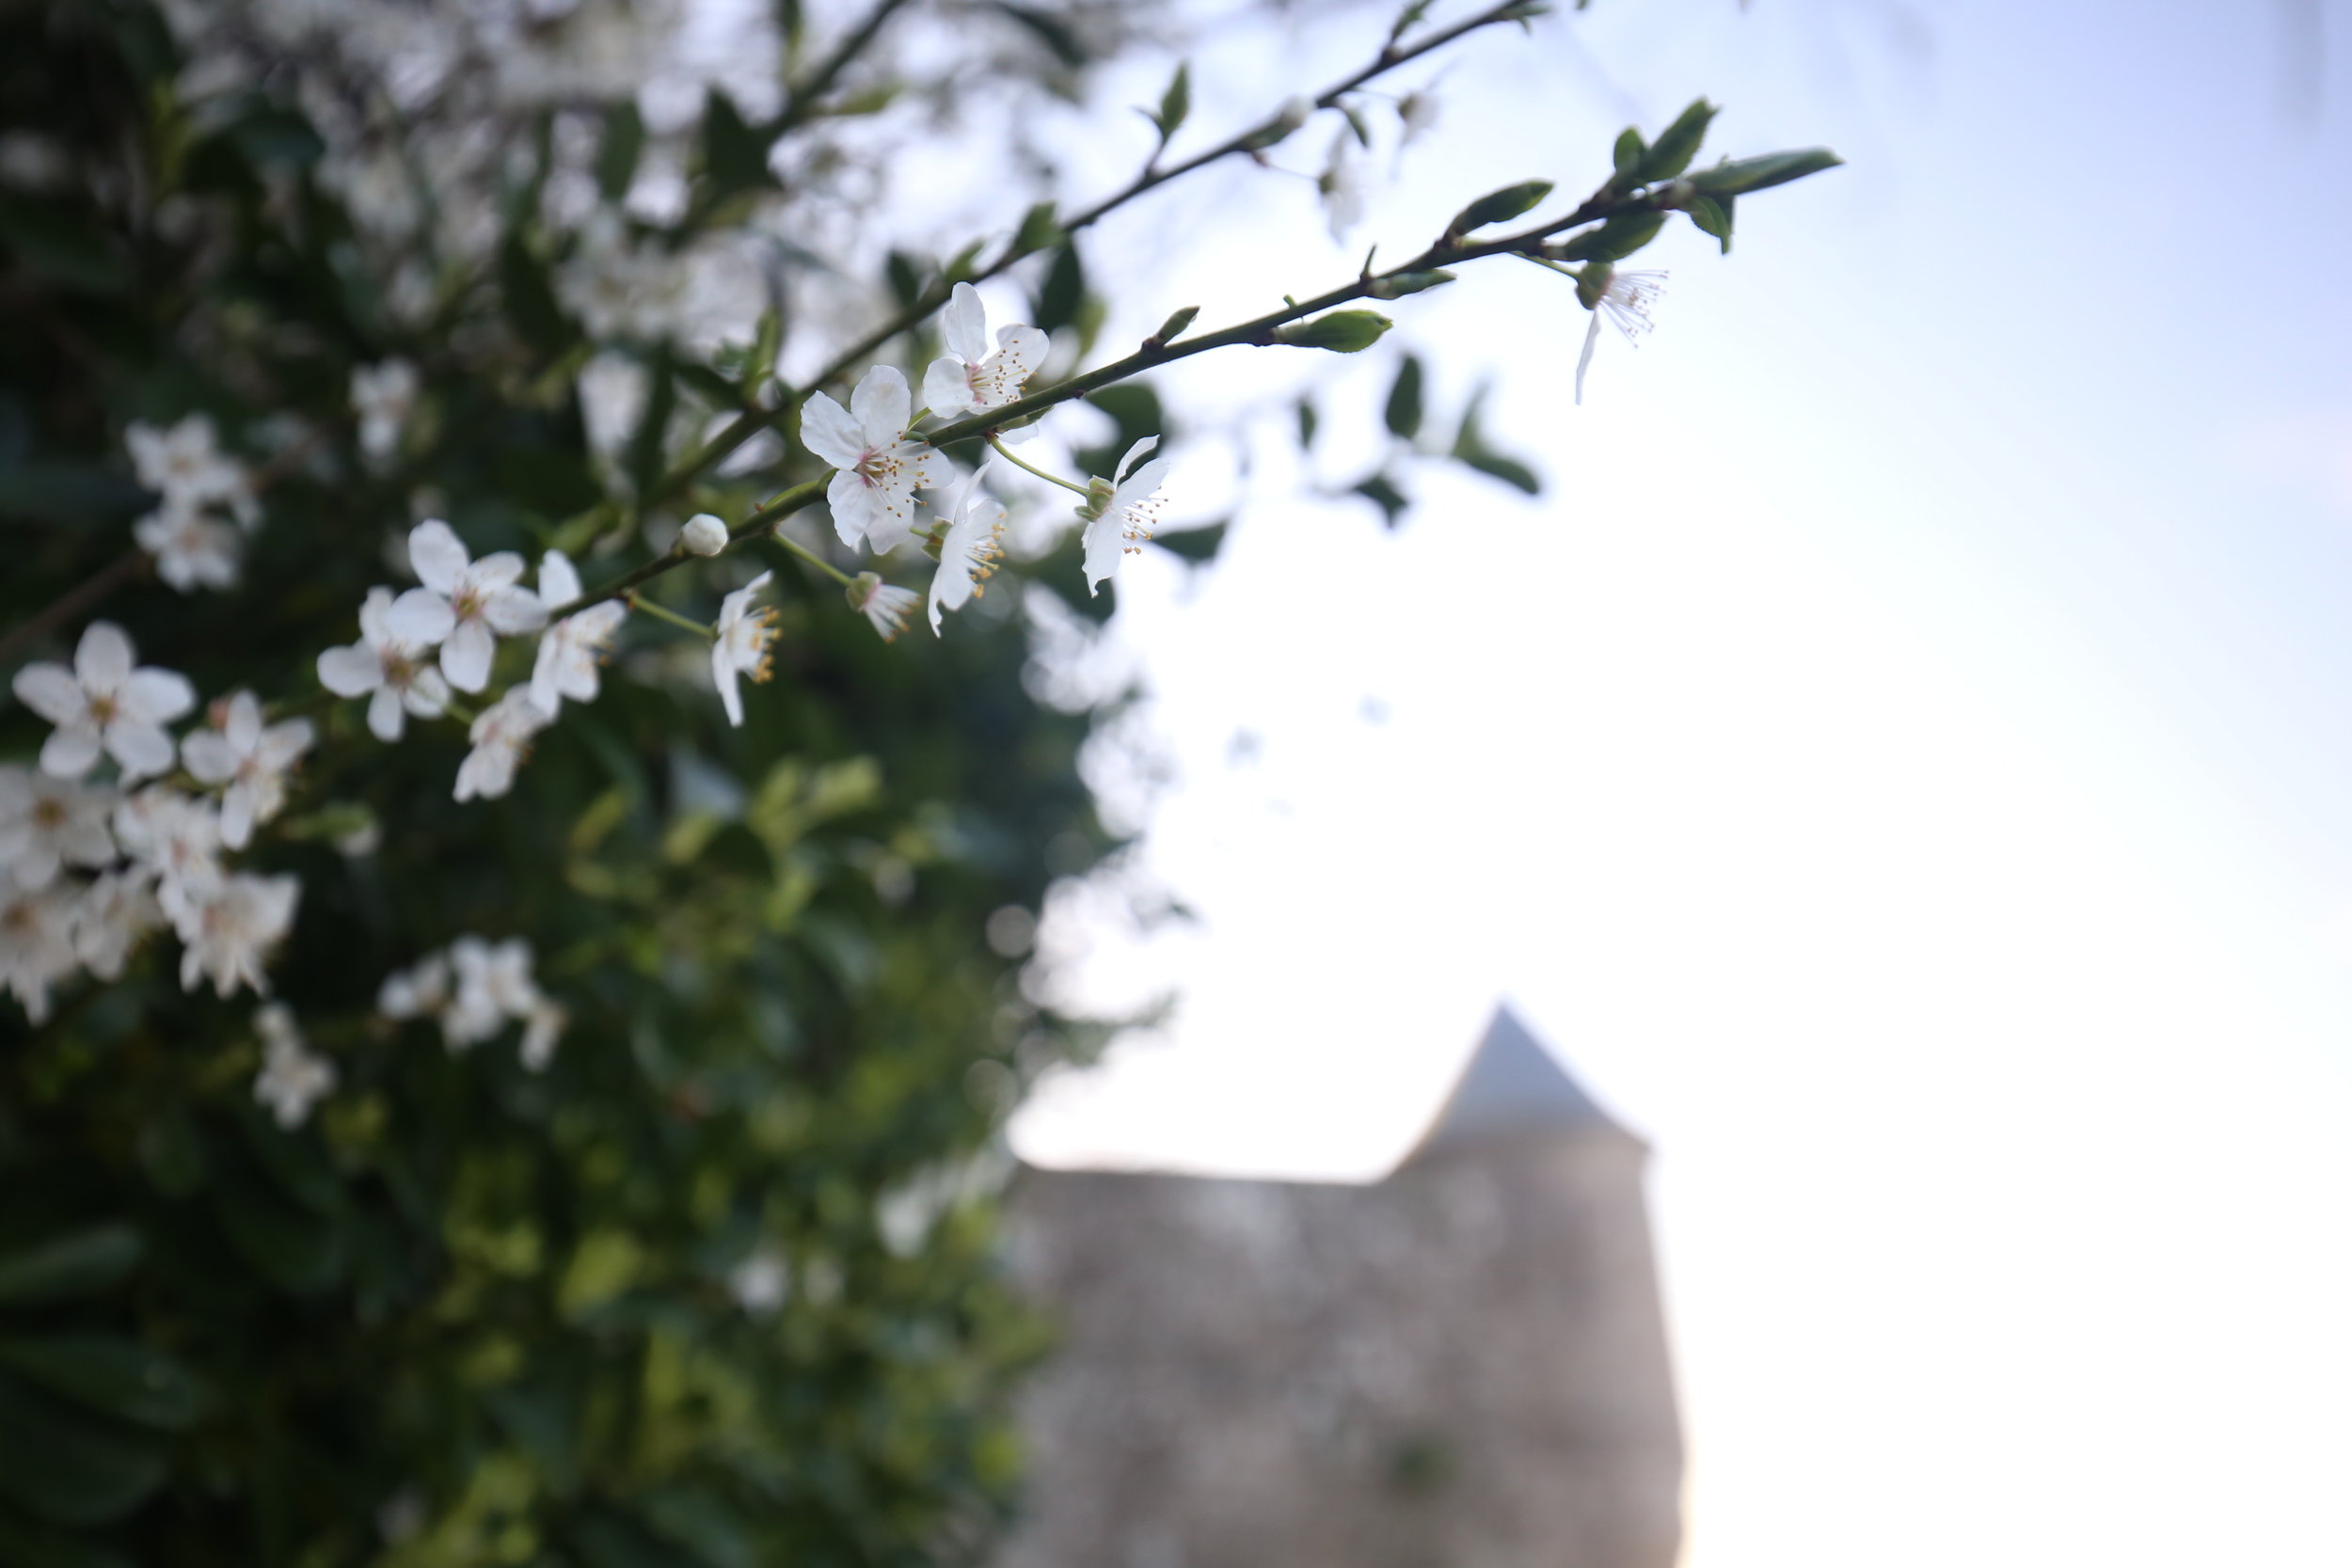 White cherry blossoms and stone castles.